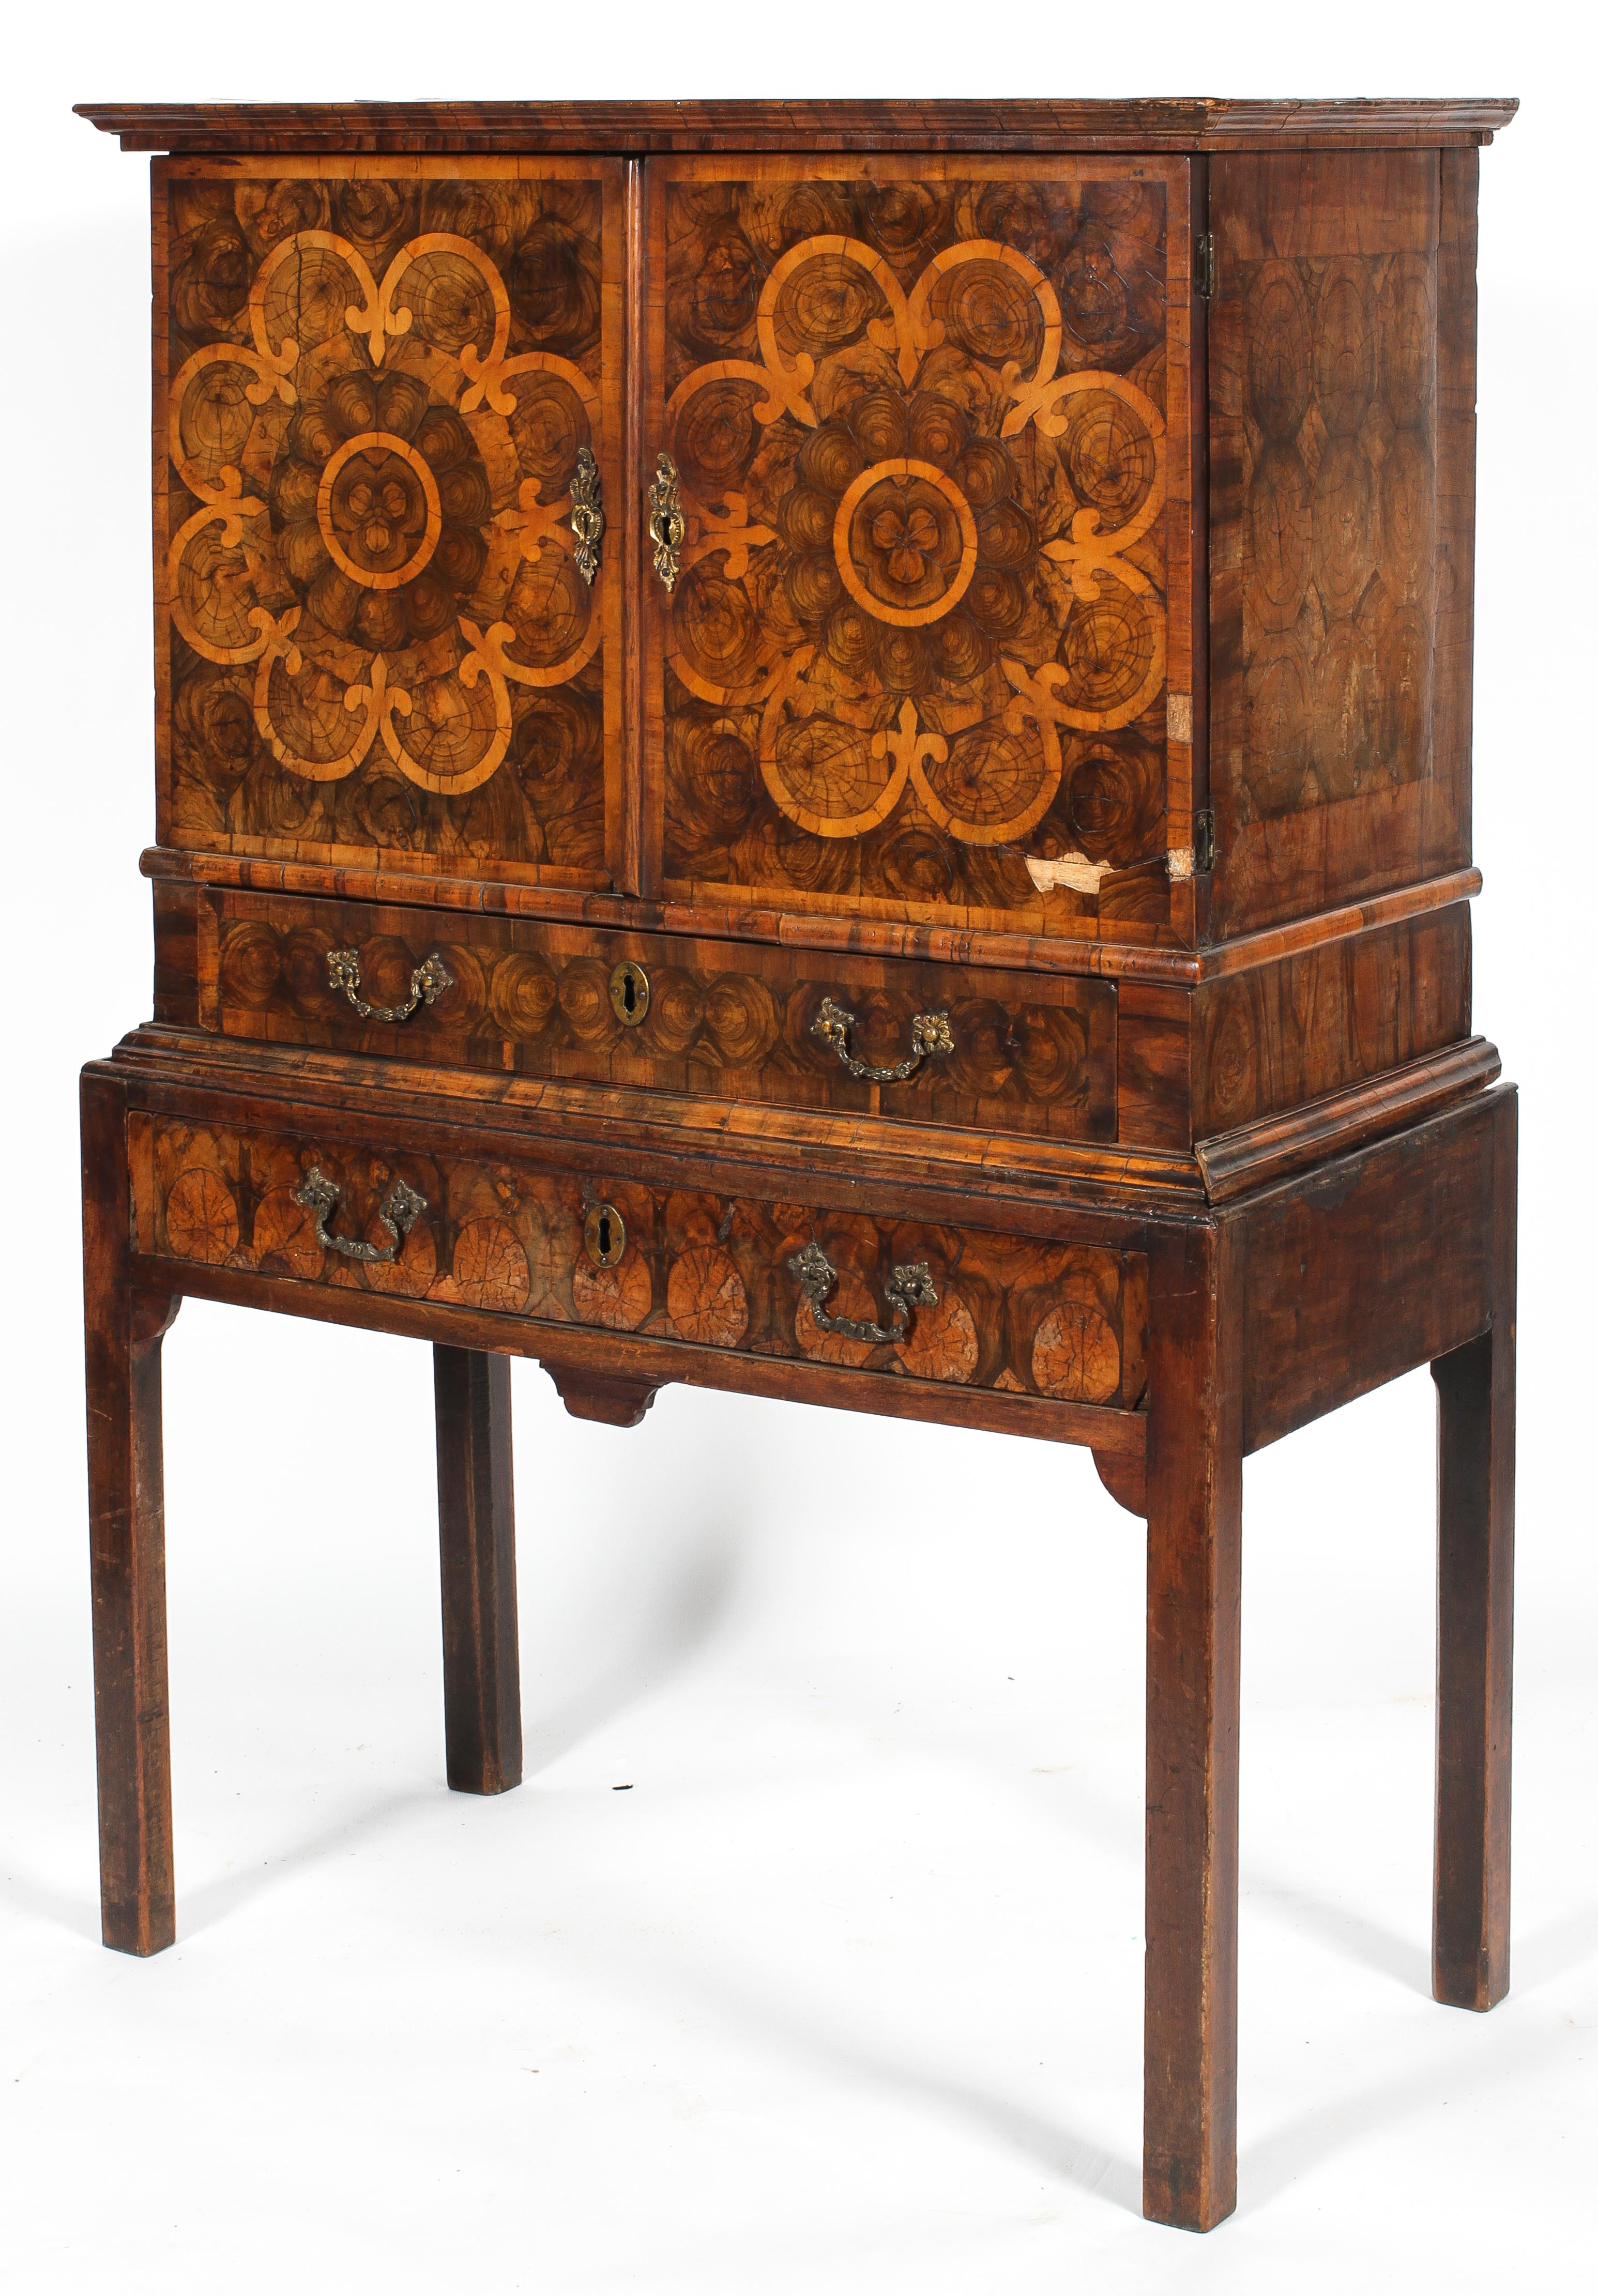 An oyster veneered cabinet on stand, 17th century style but later in date,